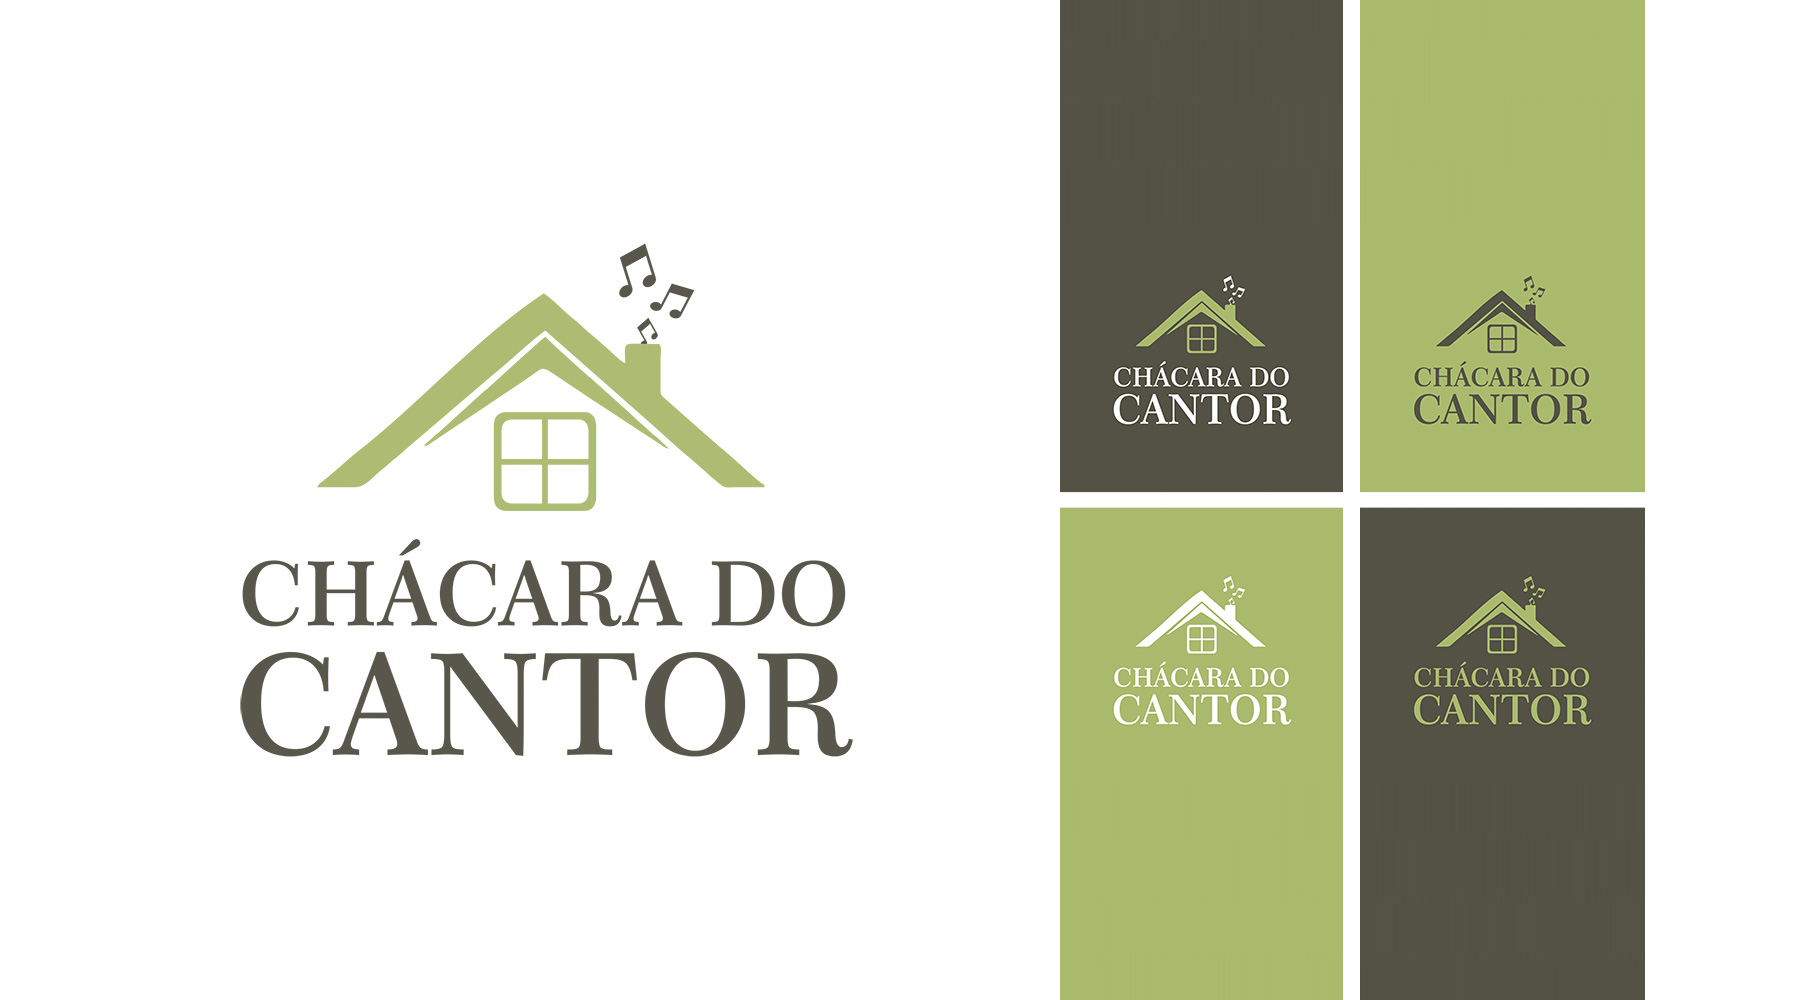 Chácara do Cantor